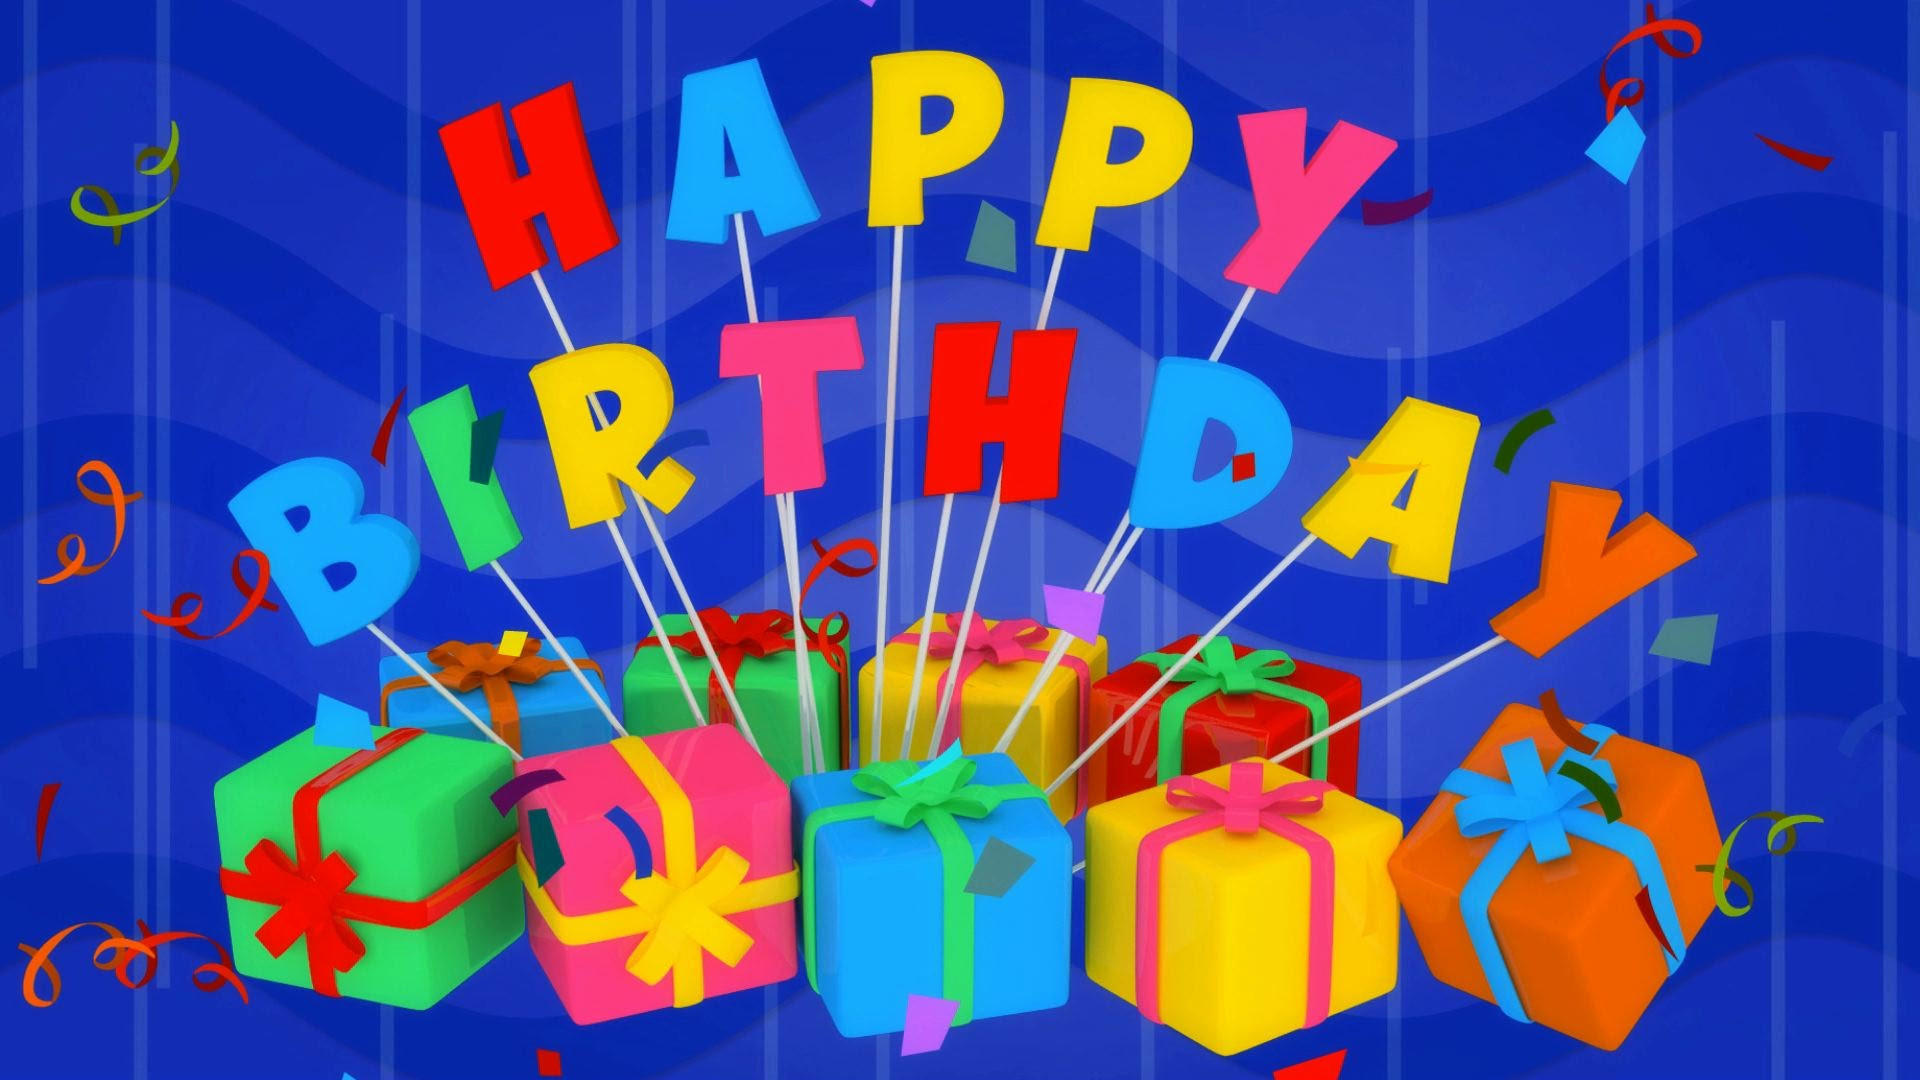 Free Download Birthday Wishes  Happy Birthday Wallpapers & s for Whatsapp